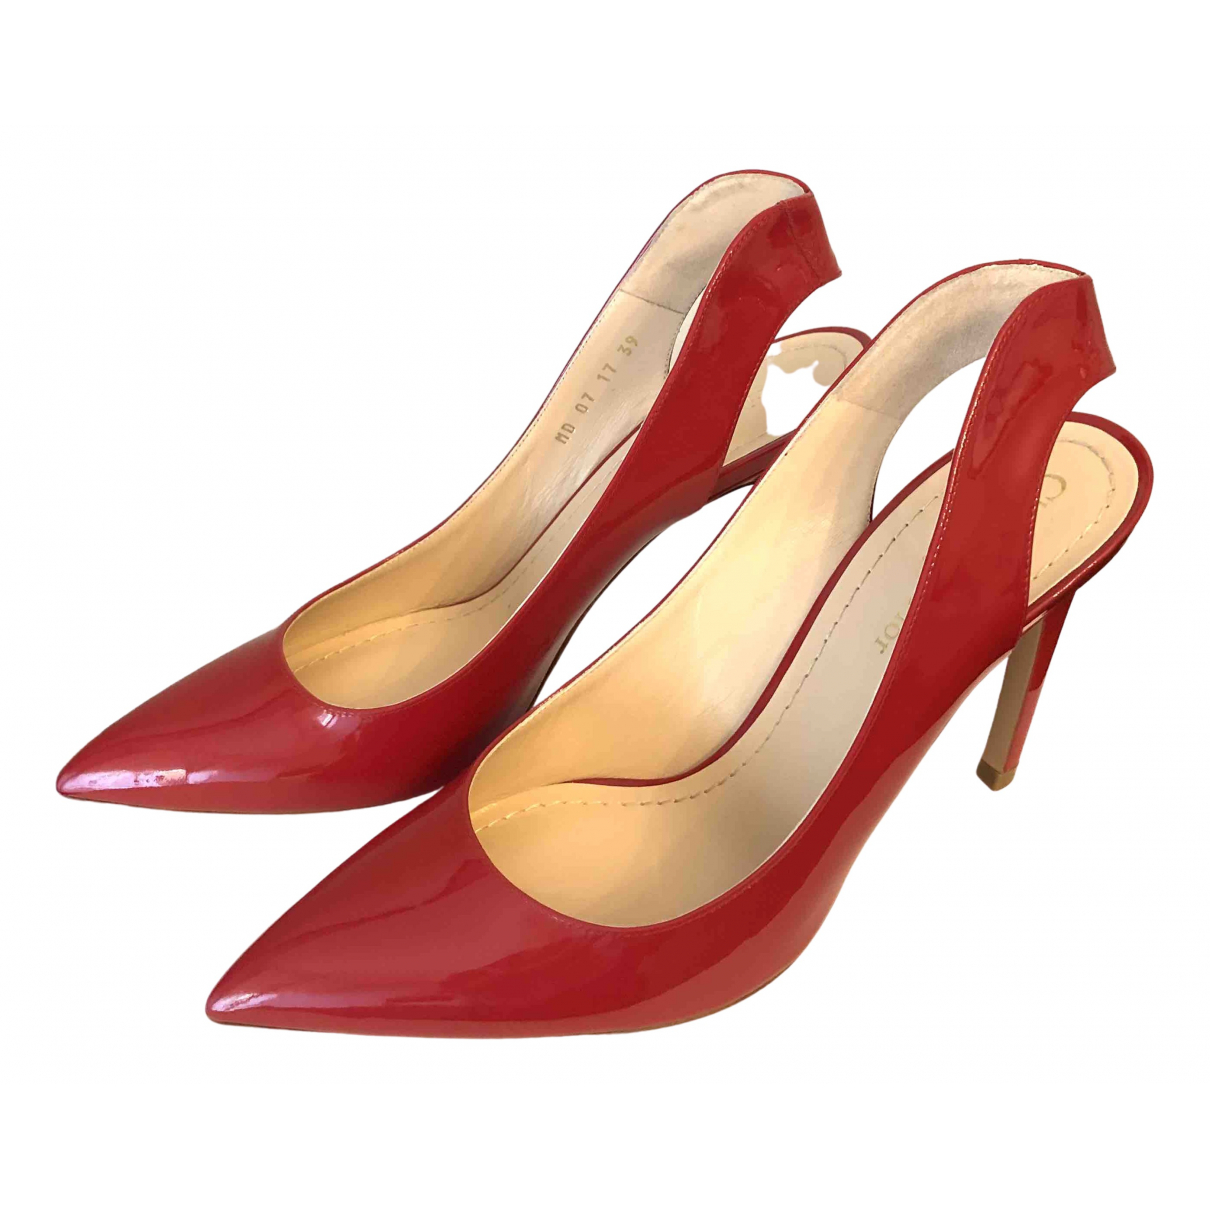 Dior \N Red Patent leather Heels for Women 39 EU